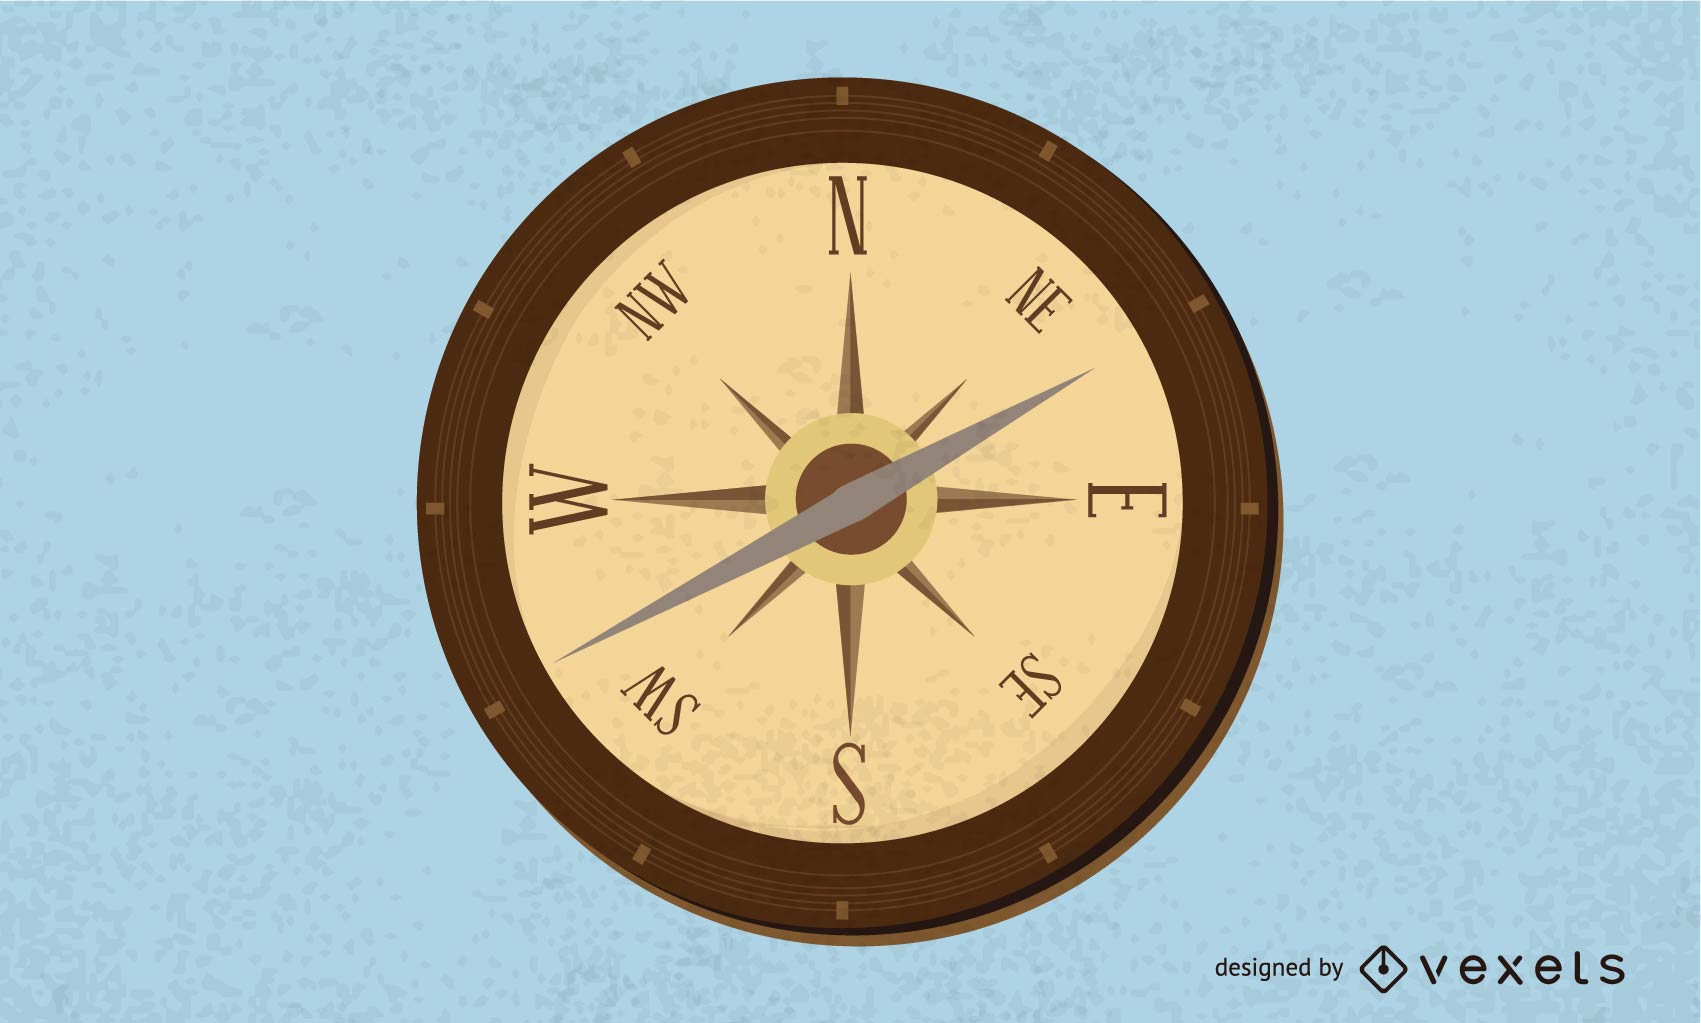 Isolated compass illustration